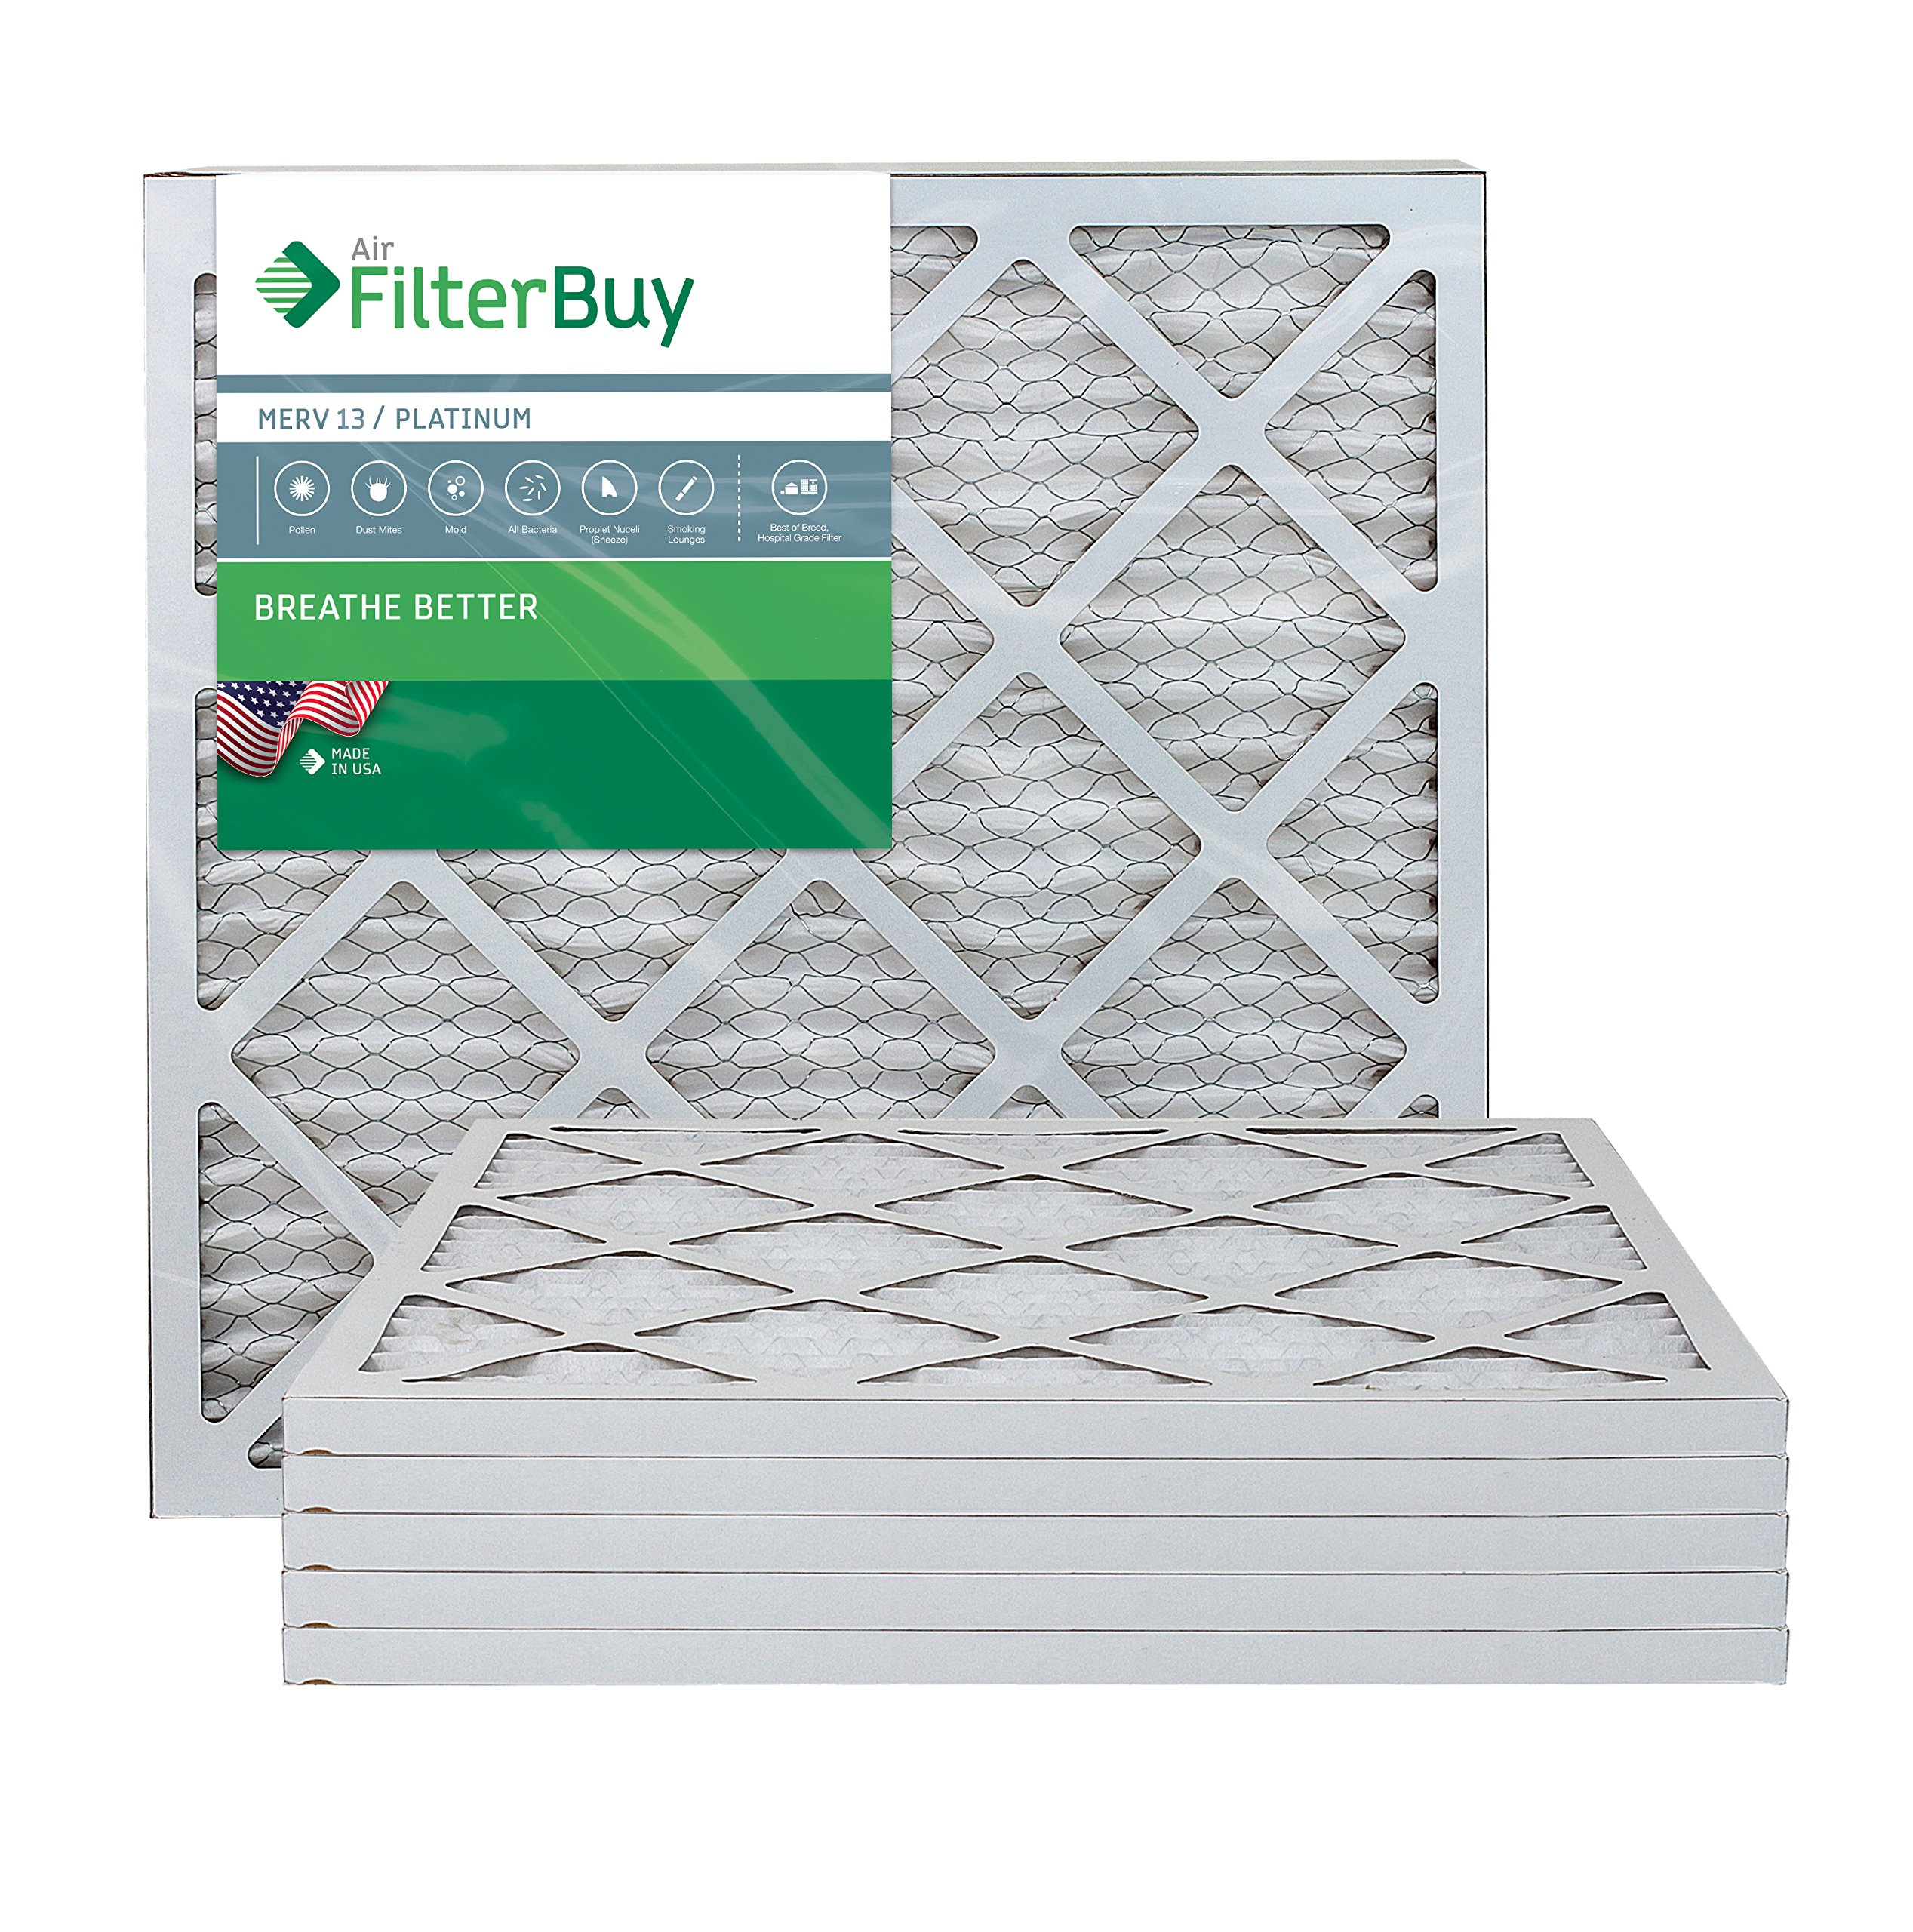 AFB Platinum MERV 13 18x20x1 Pleated AC Furnace Air Filter. Pack of 6 Filters. 100% produced in the USA.